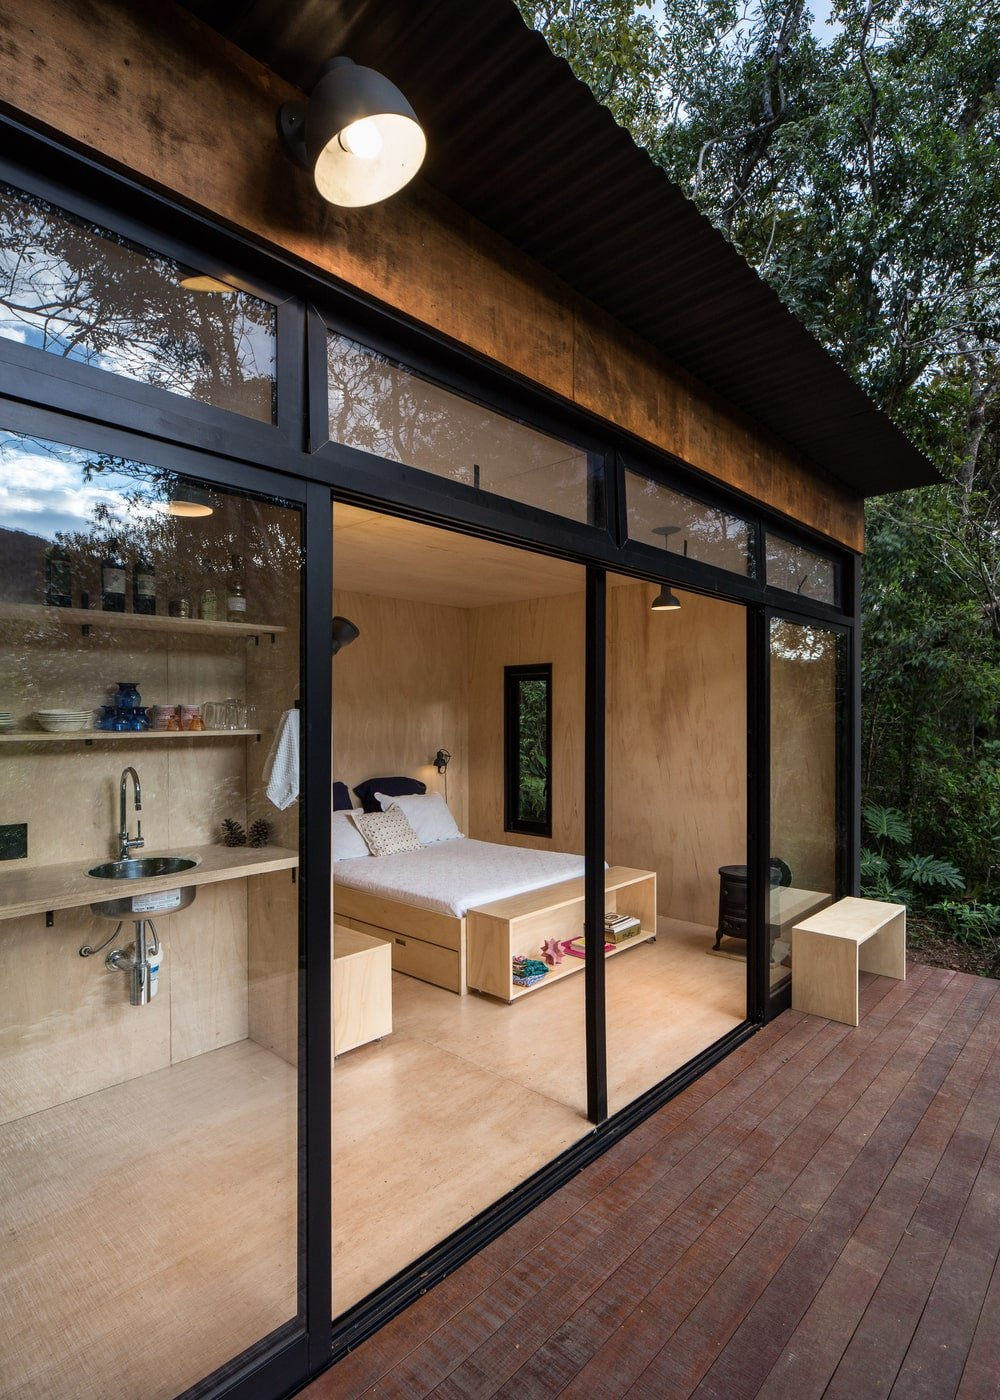 A few steps from the kitchen area is the wooden bed seen from the vantage of the wooden deck terrace.